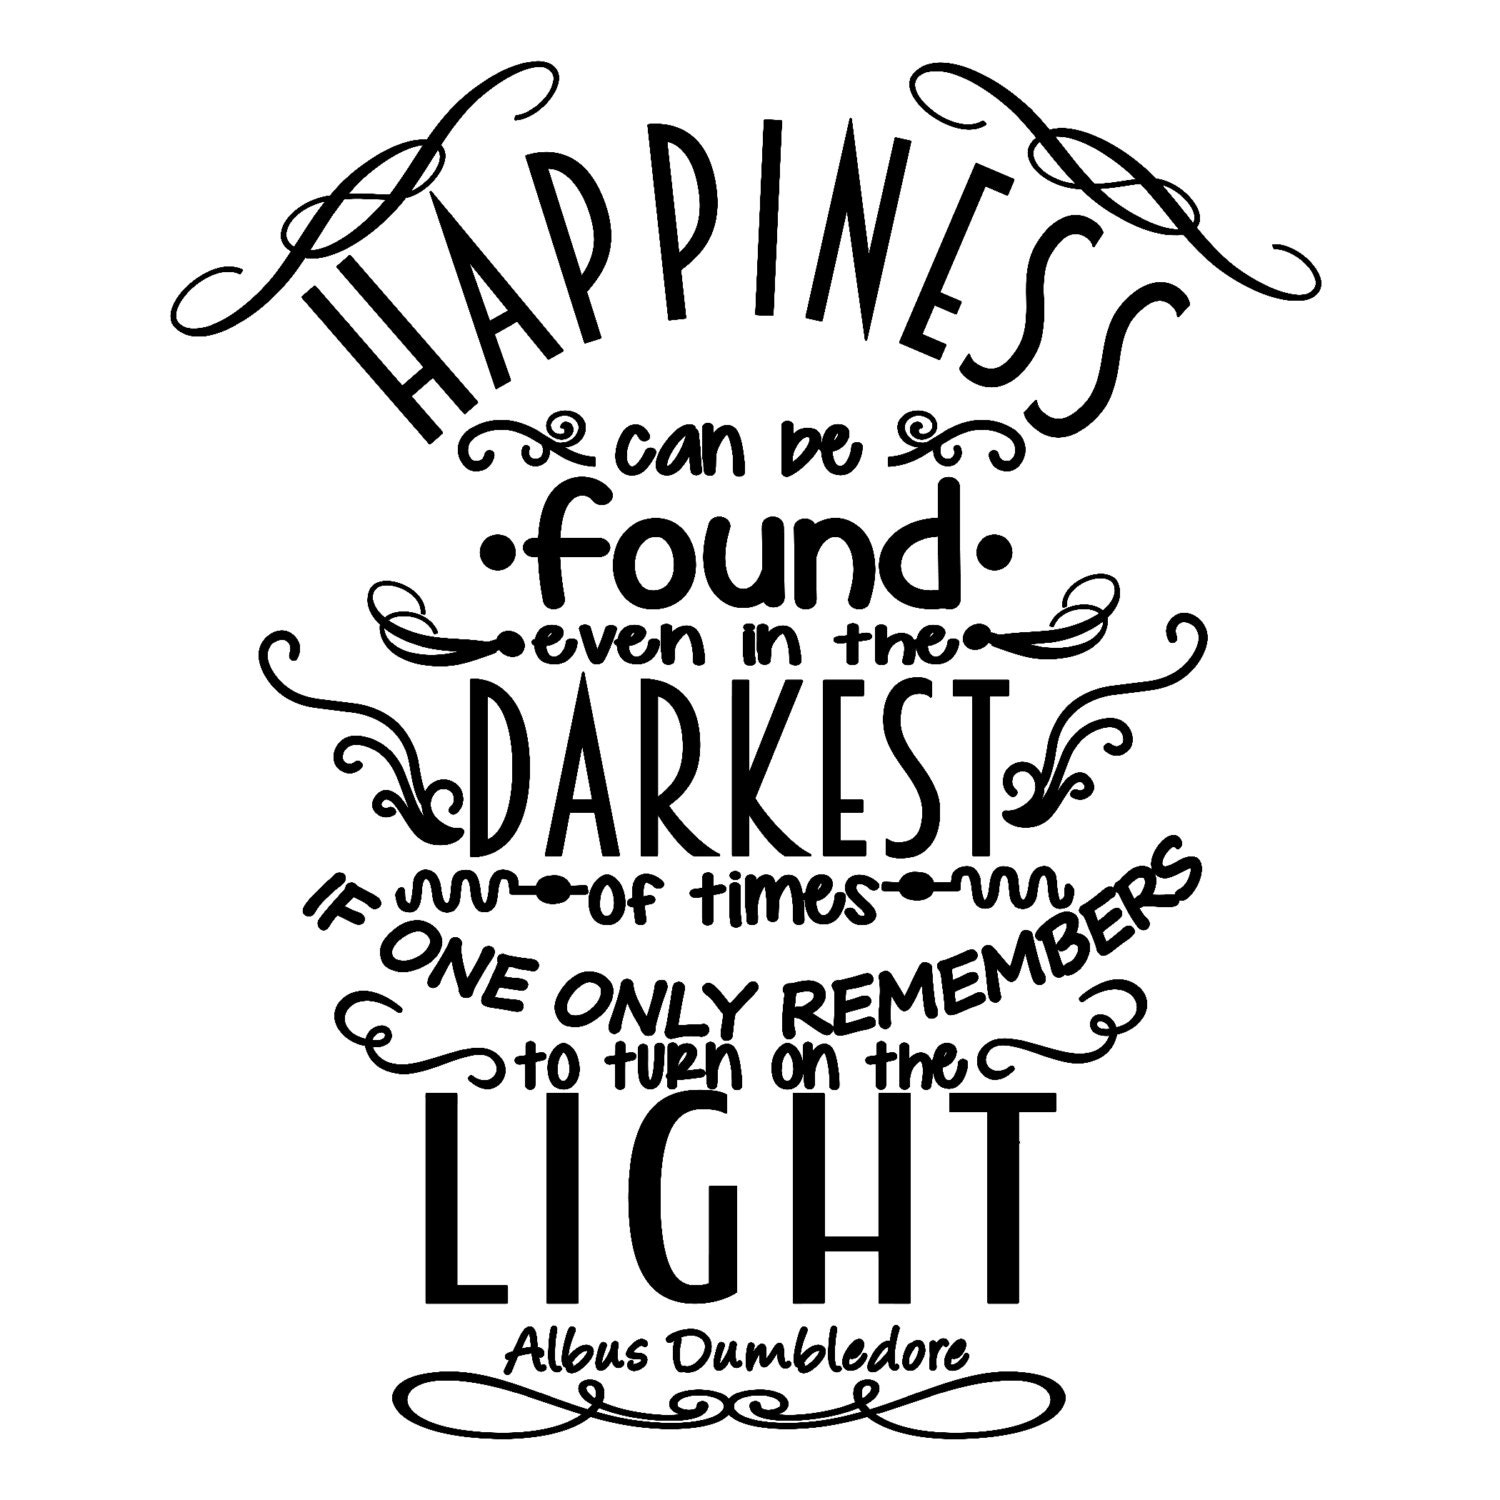 Happiness Can Be Found In The Darkest Of Times Quote: Albus Dumbledore Happiness Quote From Harry Potter